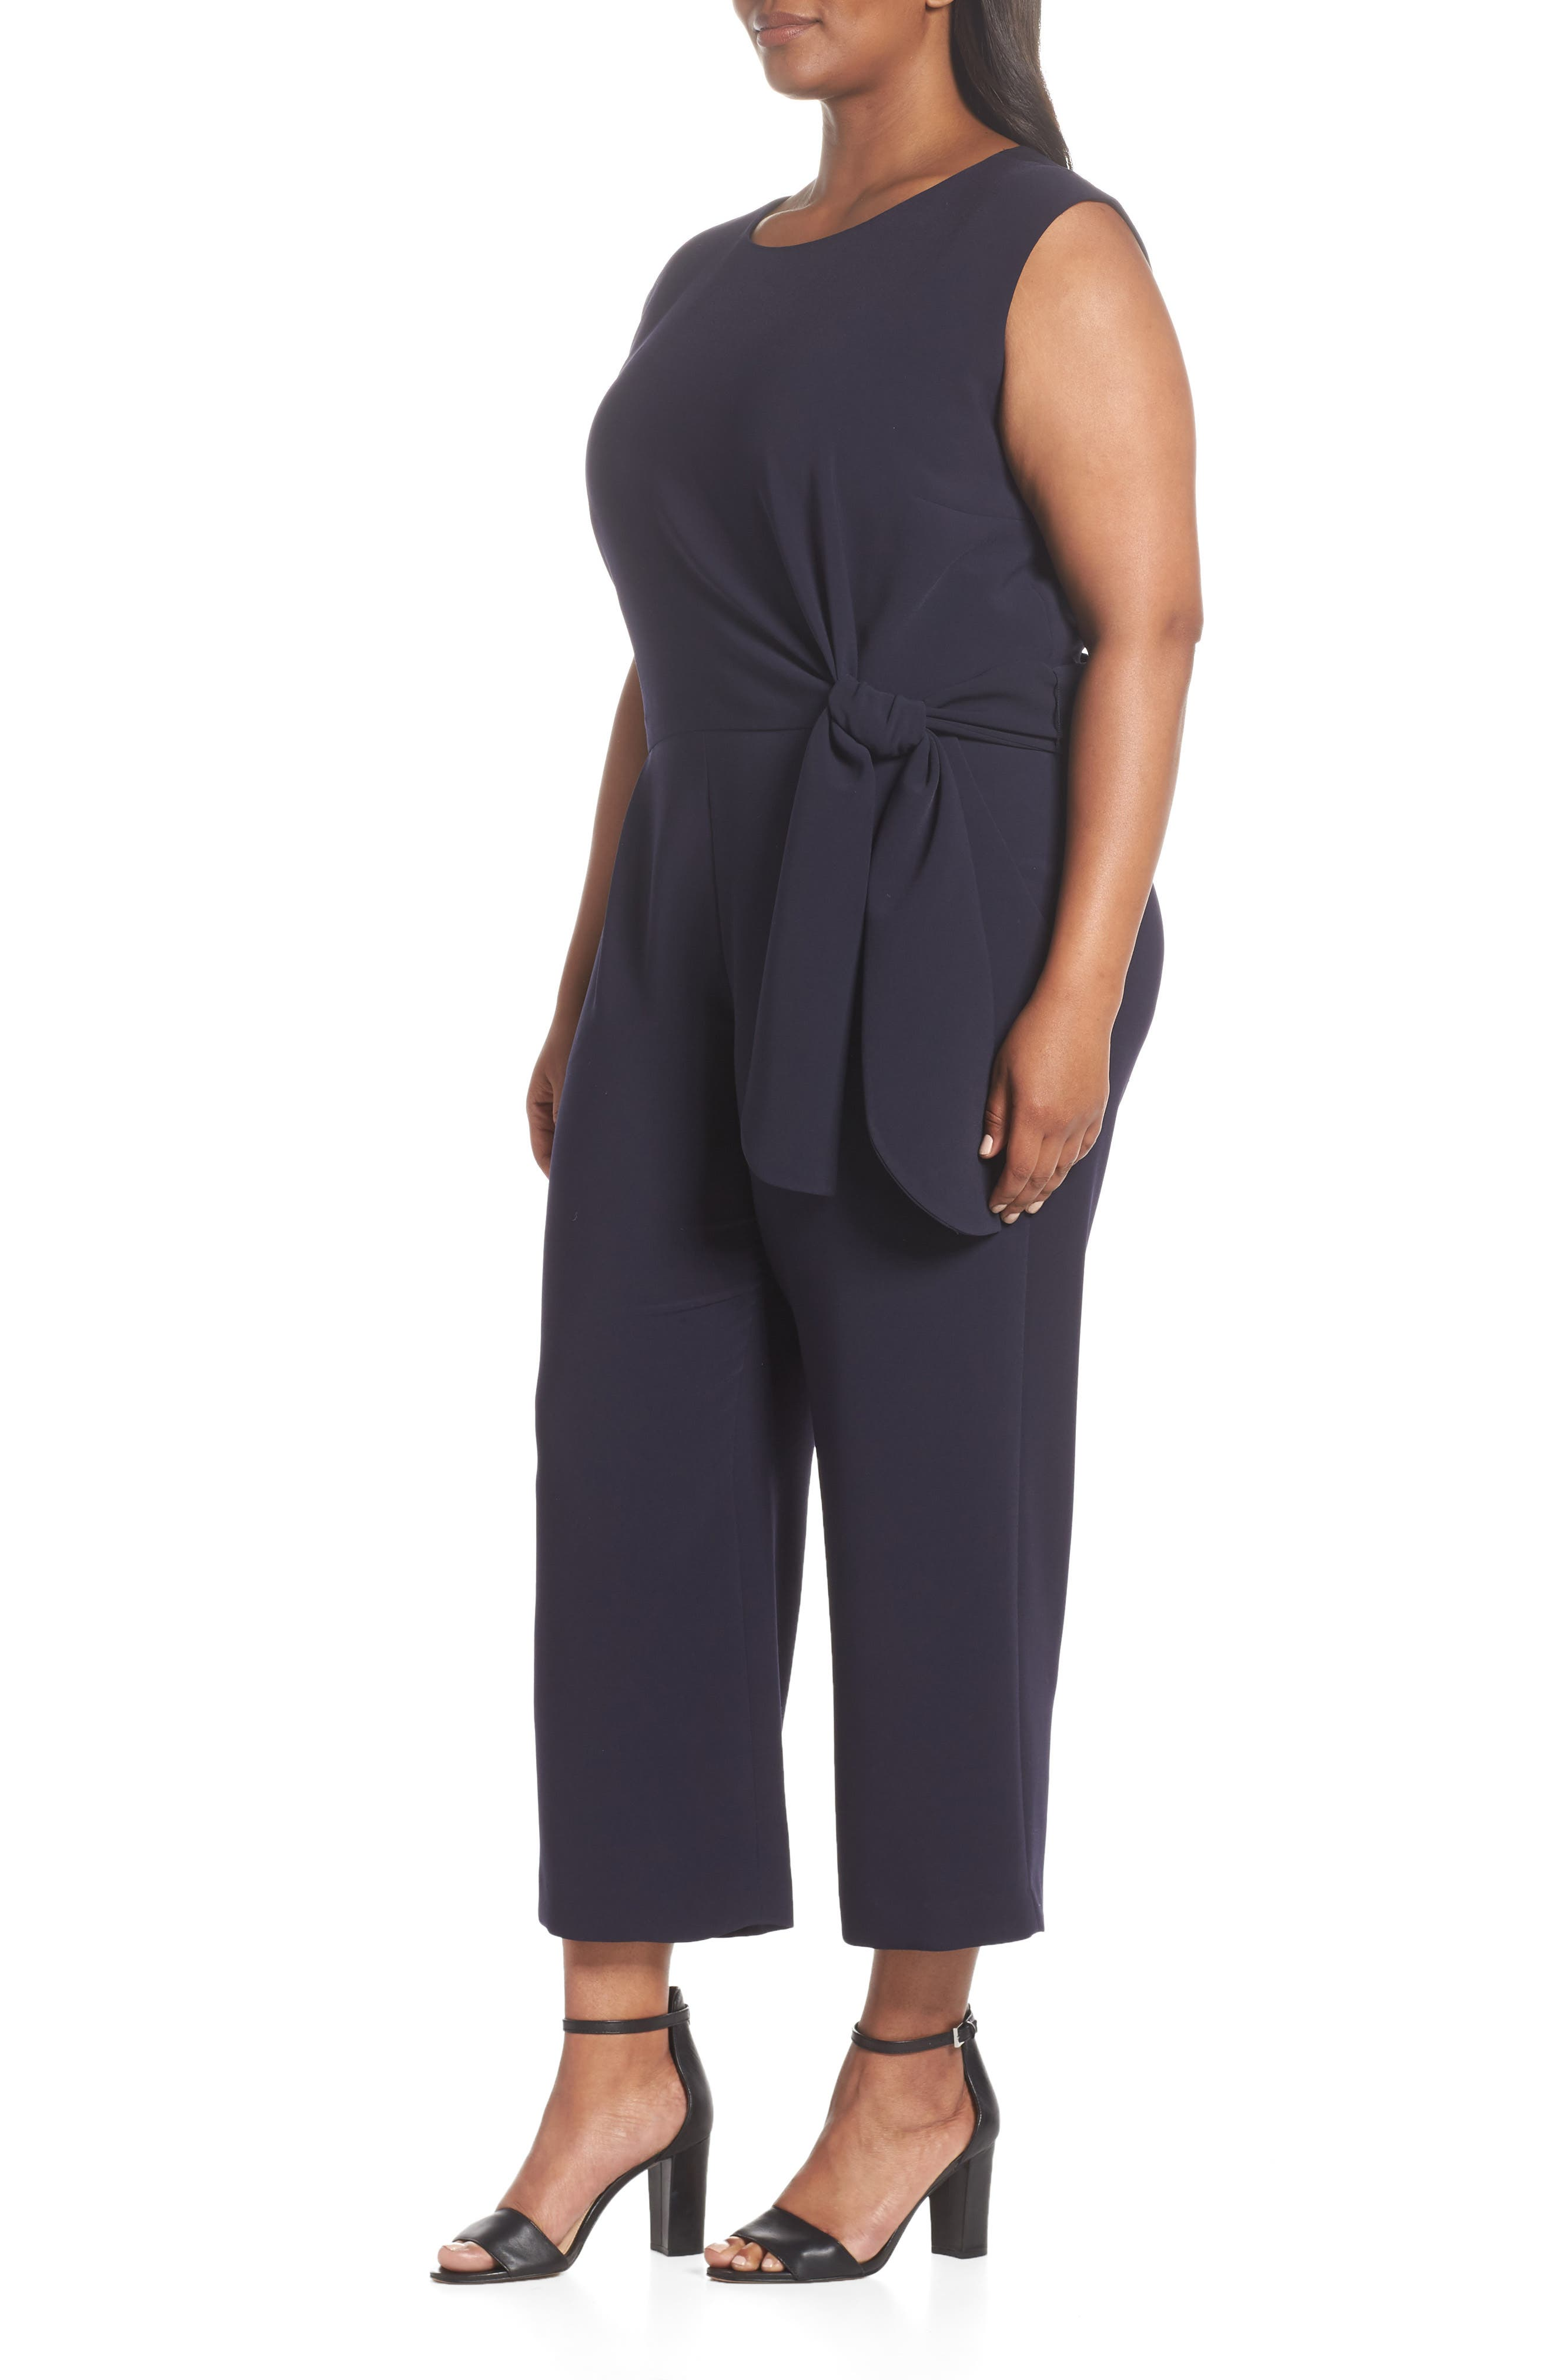 TAHARI, Tie Waist Crop Crepe Jumpsuit, Alternate thumbnail 4, color, NAVY